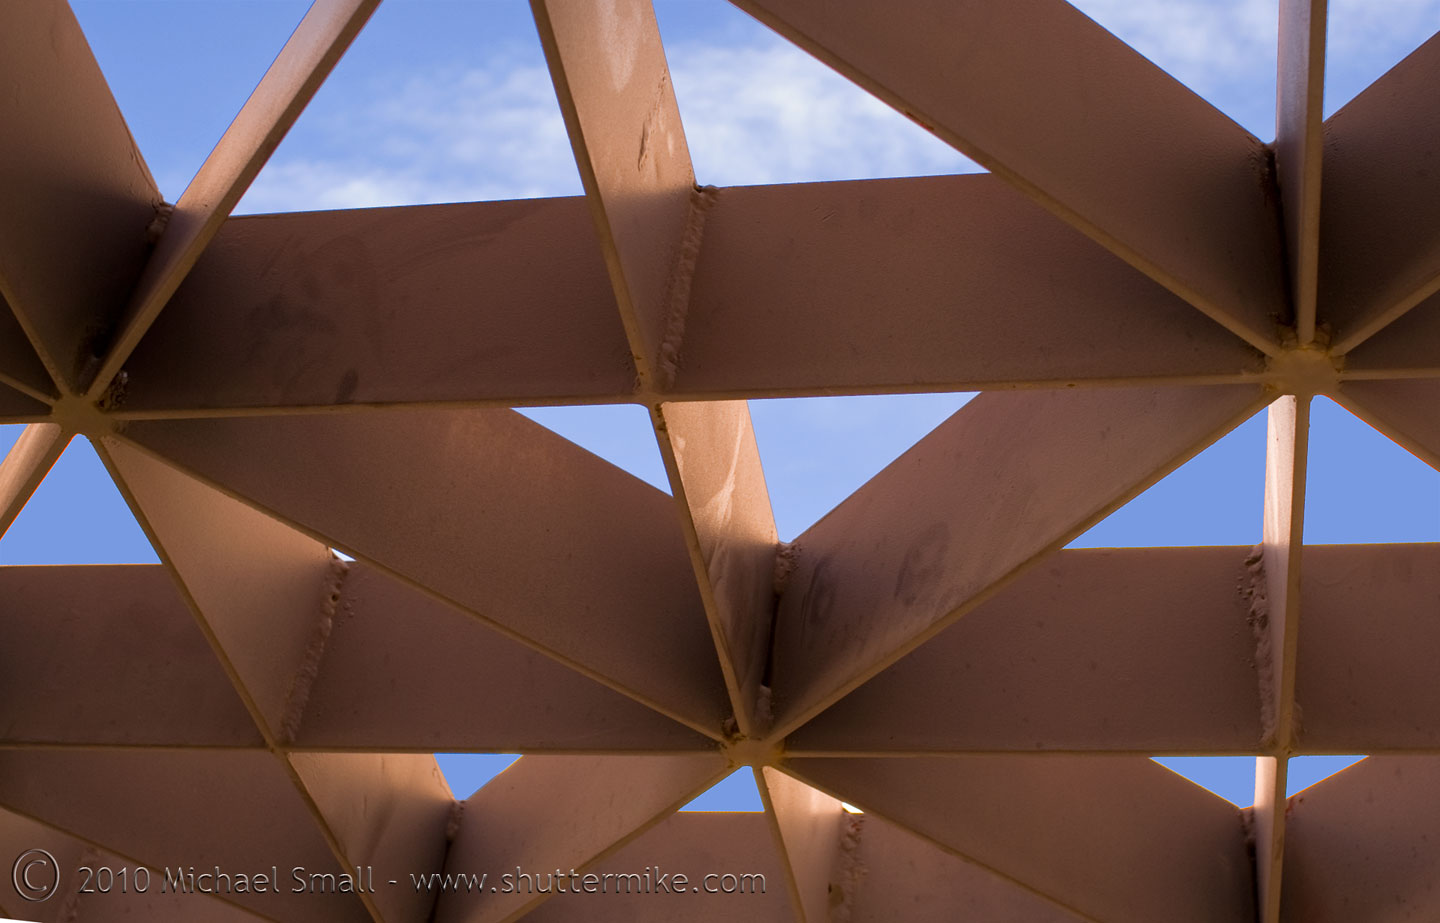 architectural detail photography. Photo Of An ASU Art Museum Architectural Detail Photography